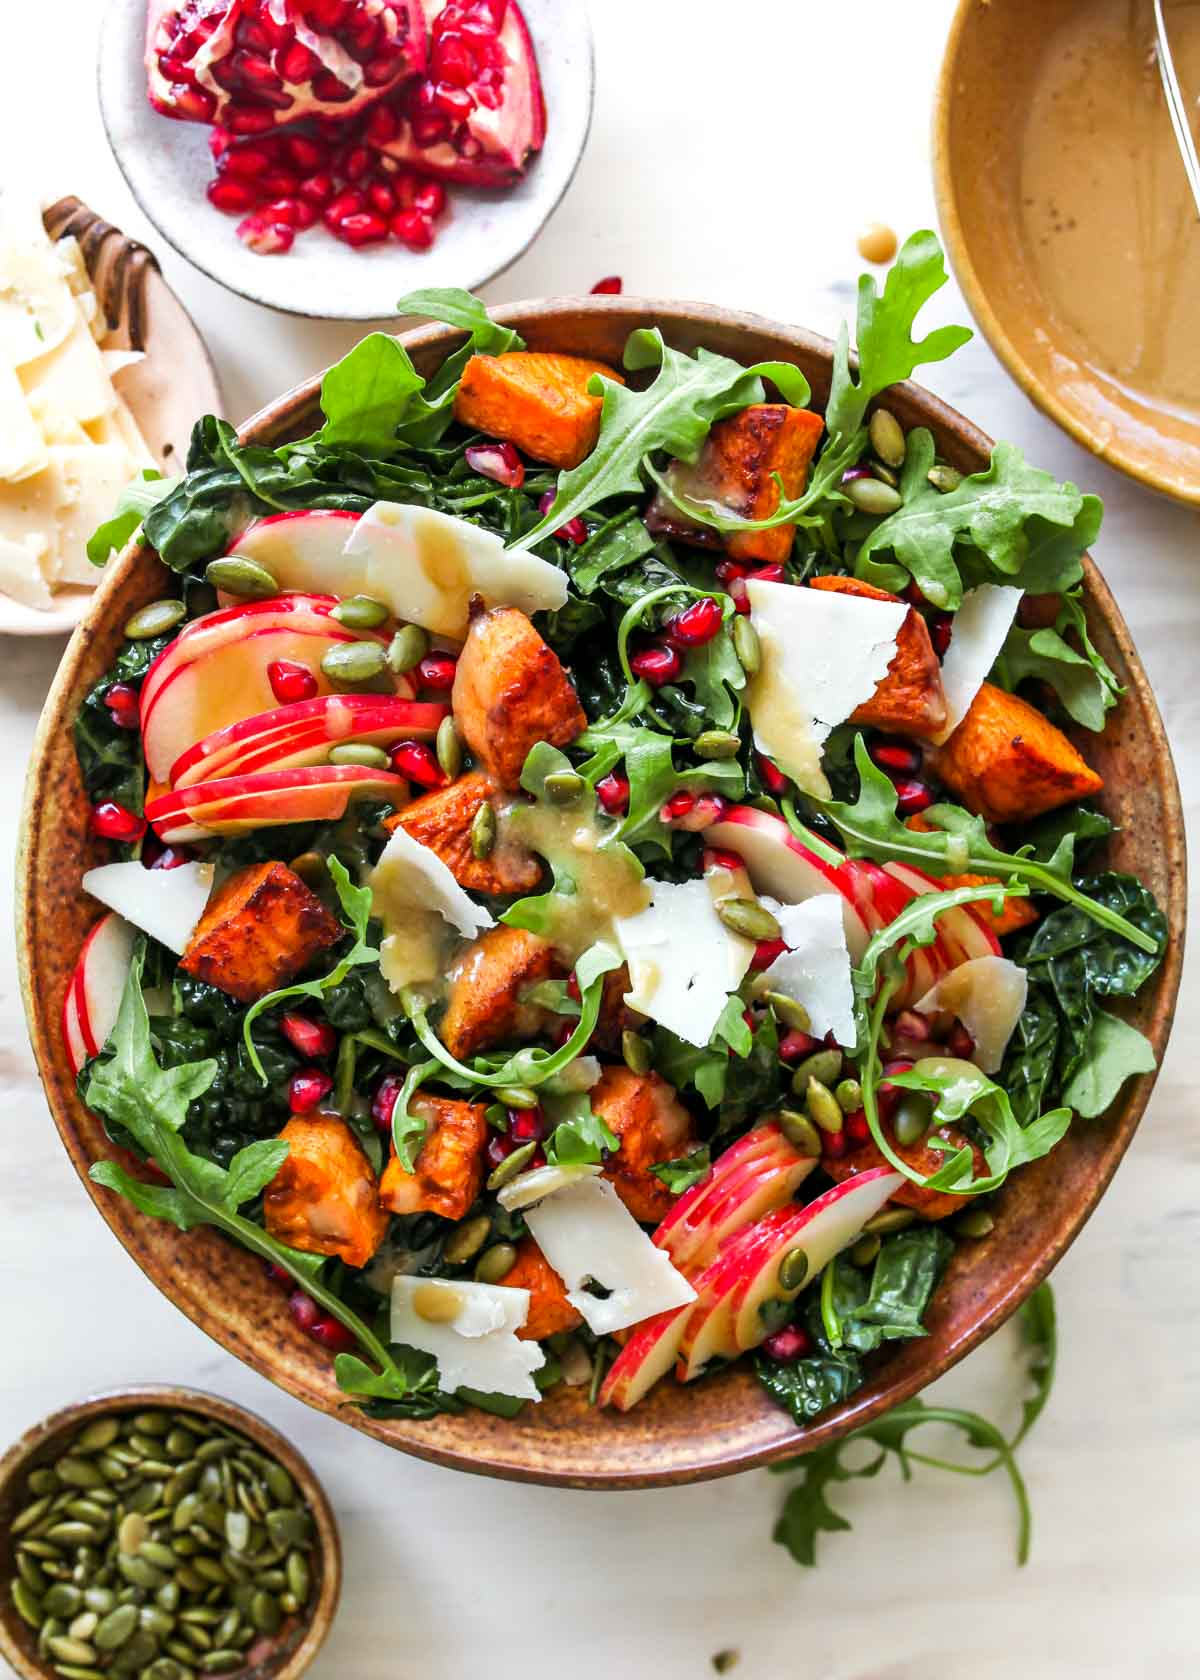 Kale salad topped with sweet potatoes, apples, and pomegranate seeds